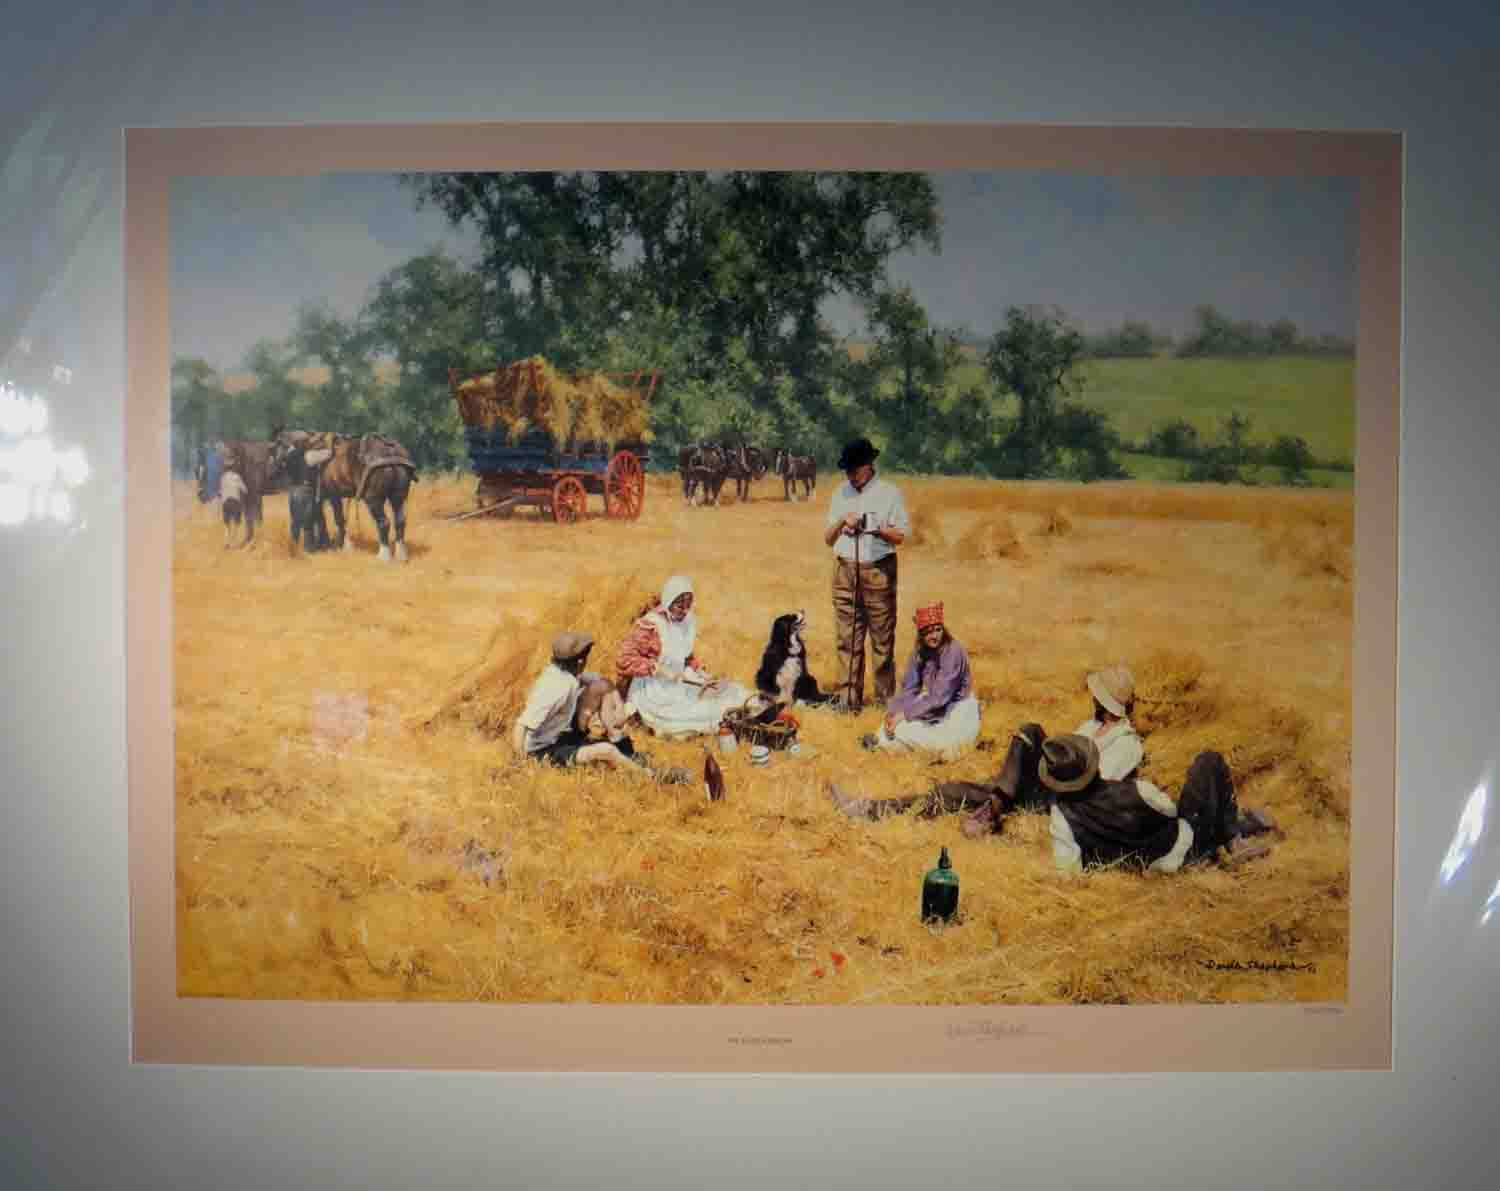 david shepherd, the lunch break, signed limited edition print